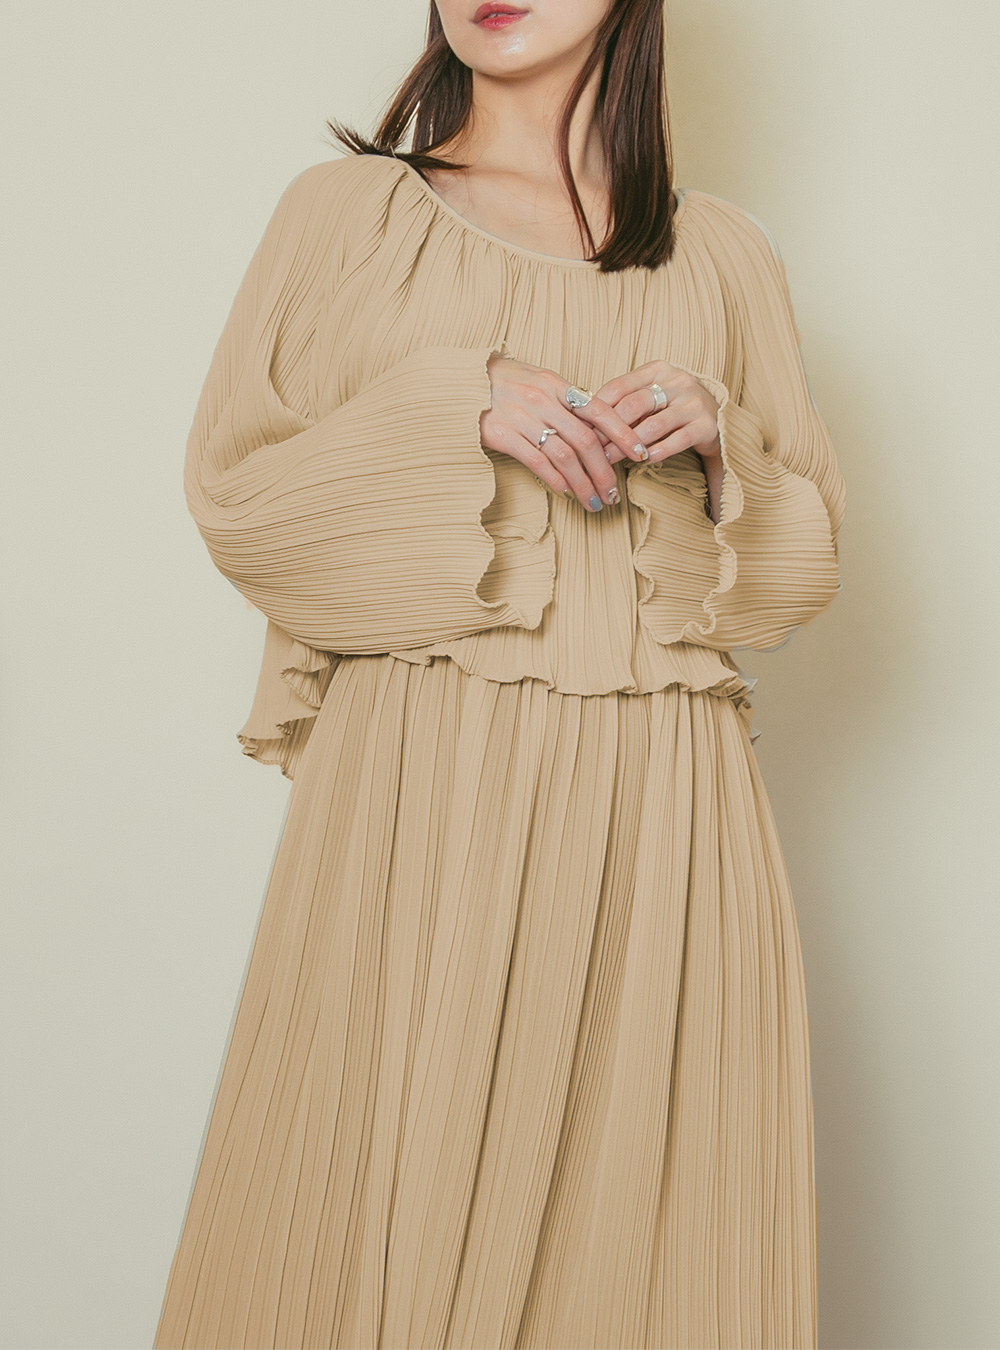 1970's Light Beige Crystal Pleats Dress